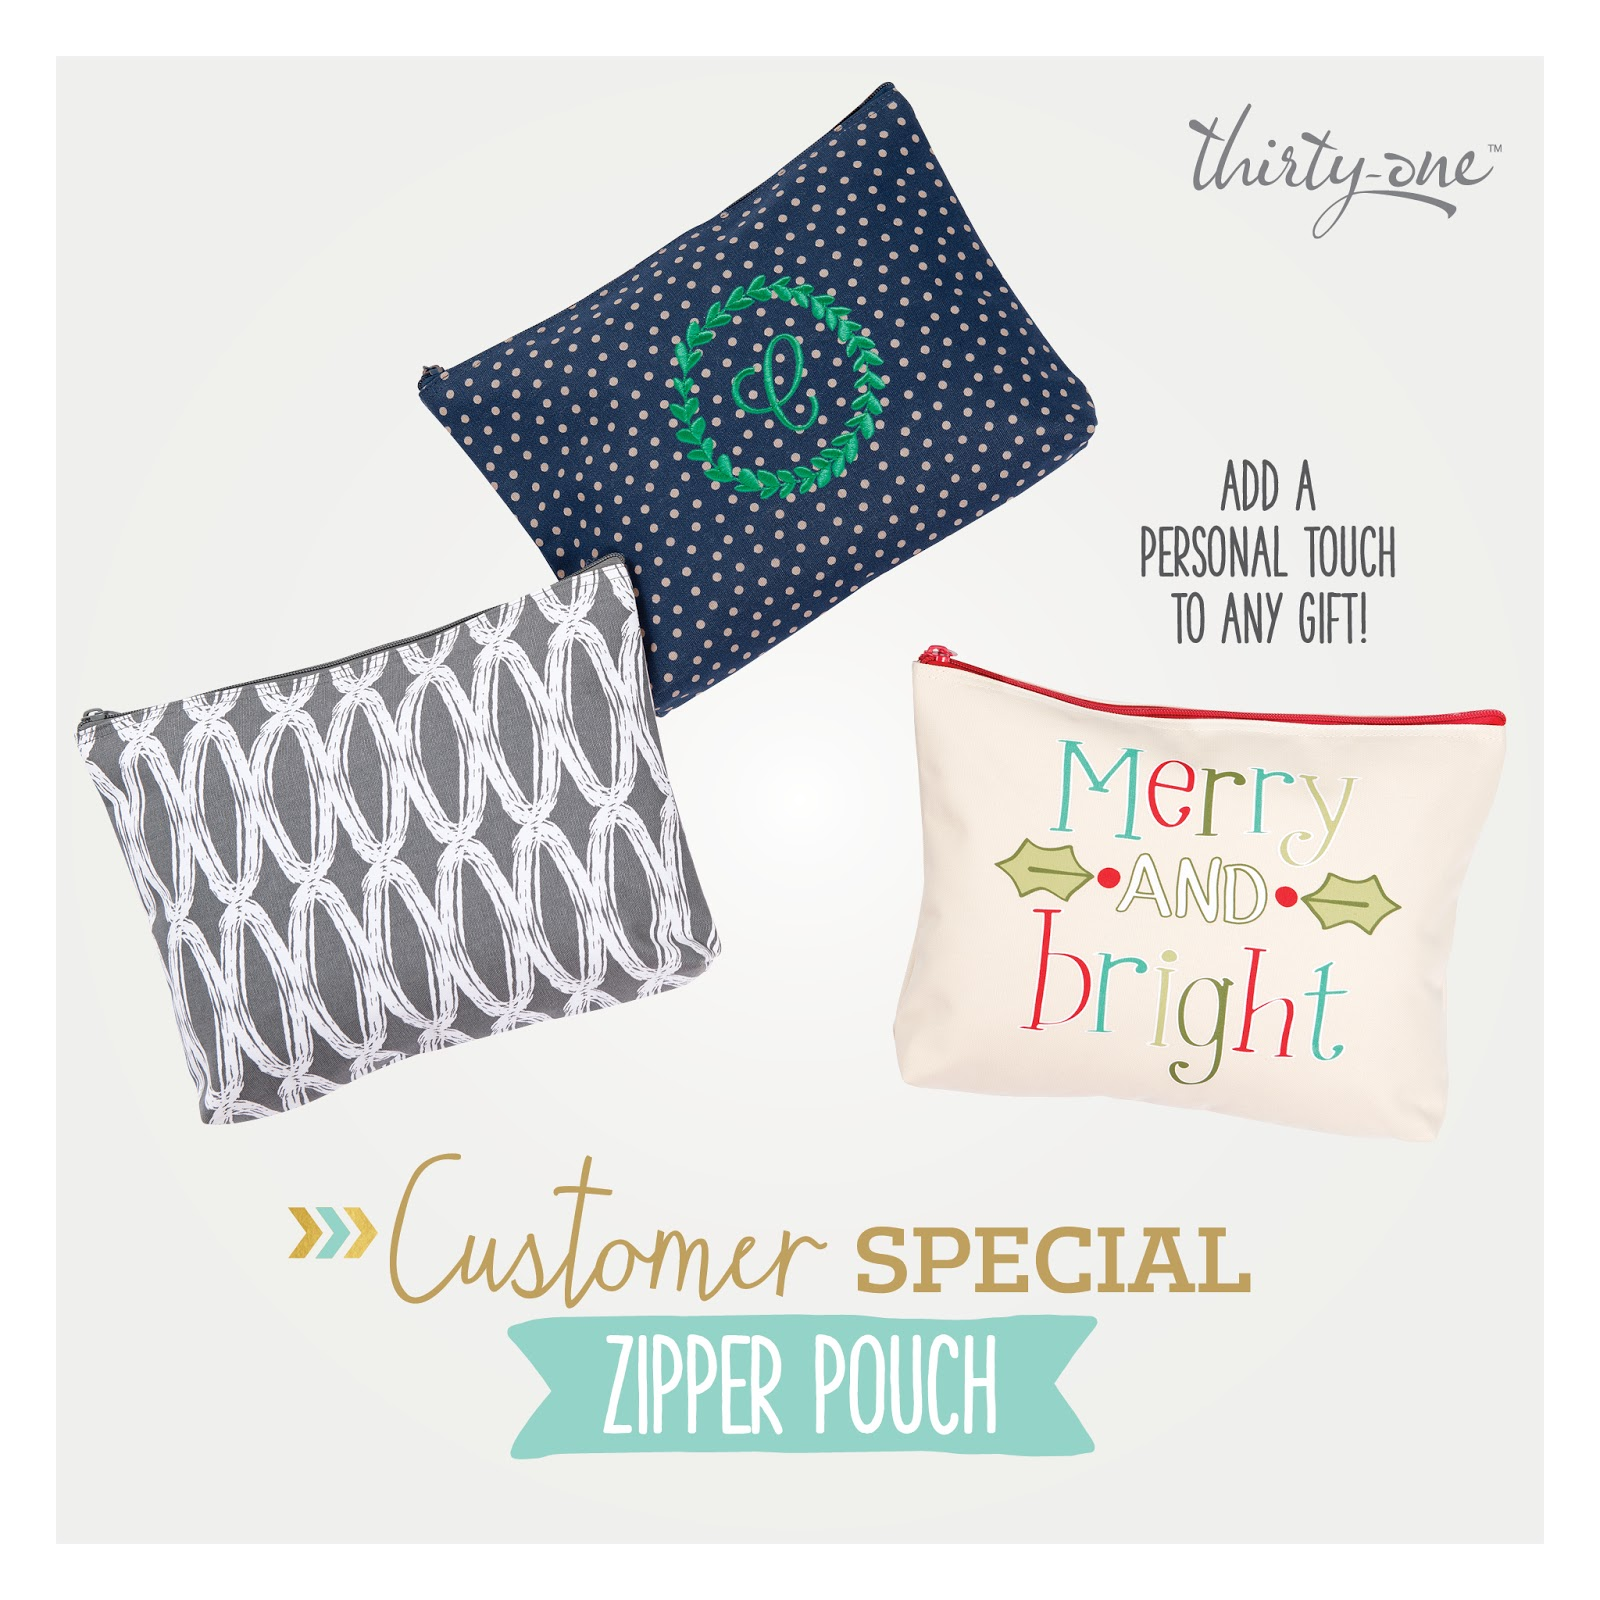 Thirty one november customer special 2014 - Customer Special Your Choice For Every 35 00 Spent You Can Purchase A Zipper Pouch For 5 00